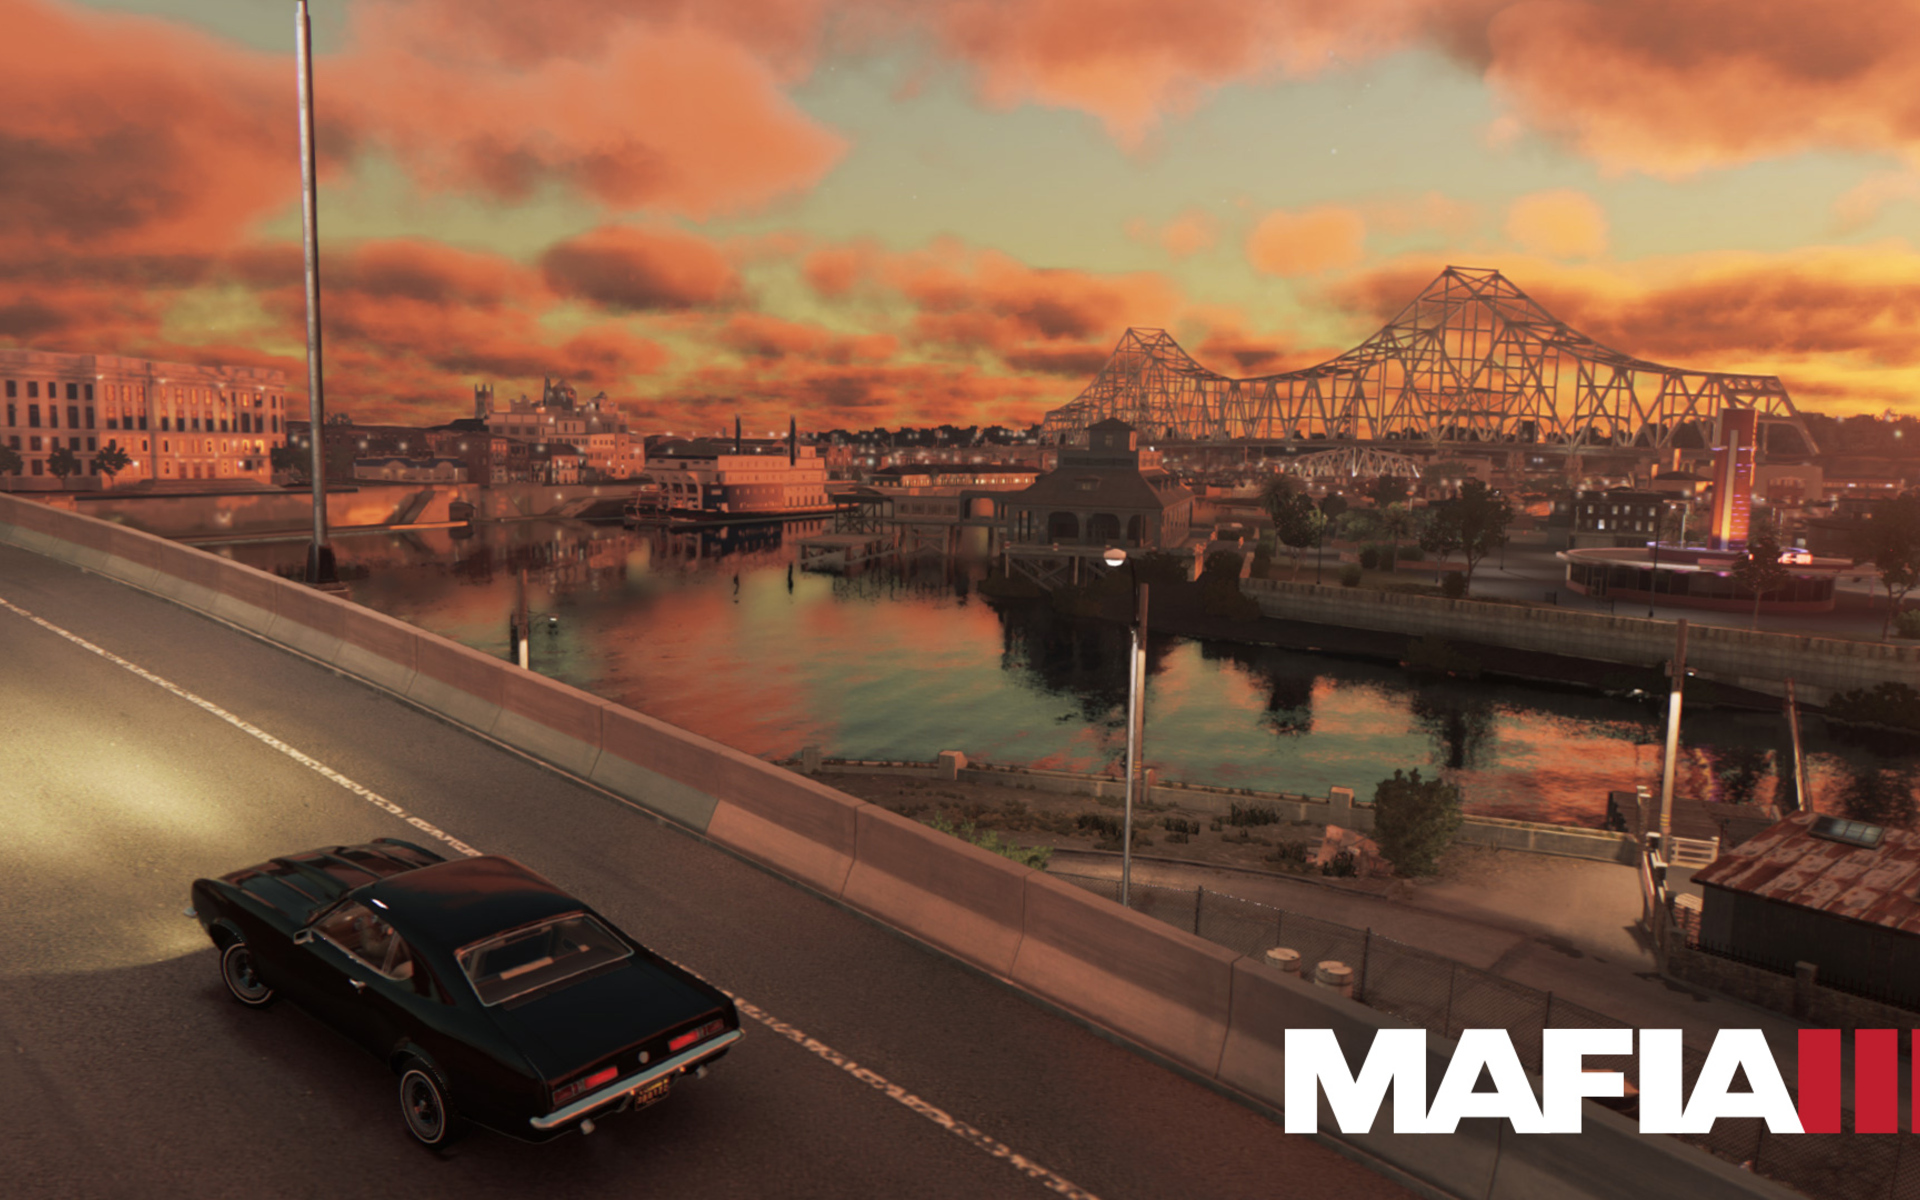 1920x1200 Mafia 3 Game 1080p Resolution Hd 4k Wallpapers Images